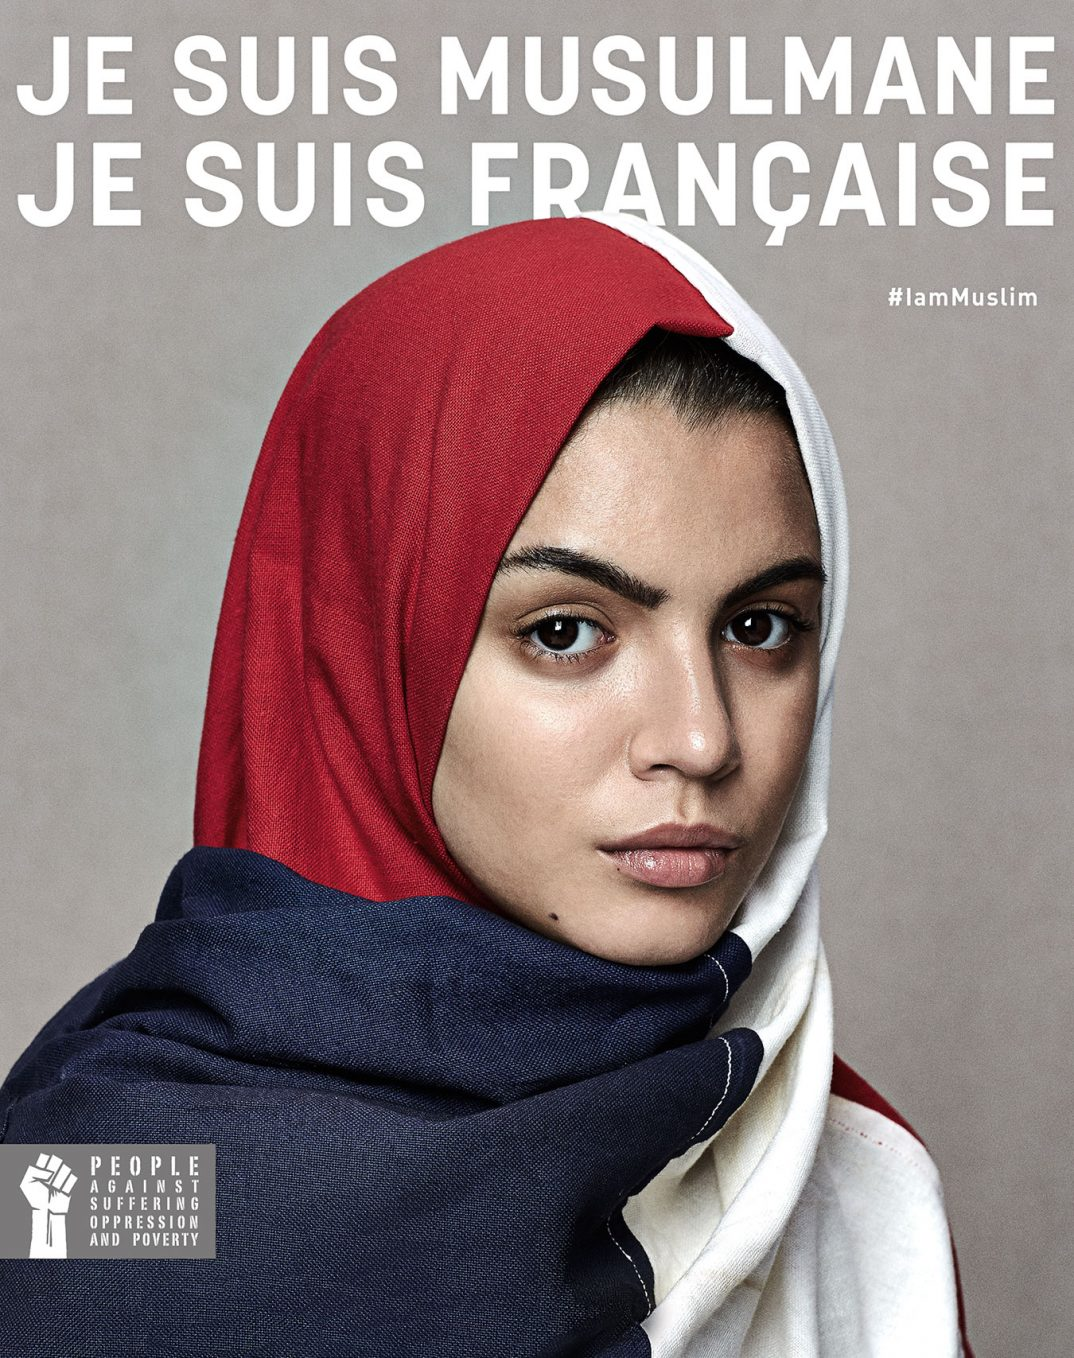 People-Against-Suffering-Oppression-and-Poverty-PASSOP-IAmMuslim-French